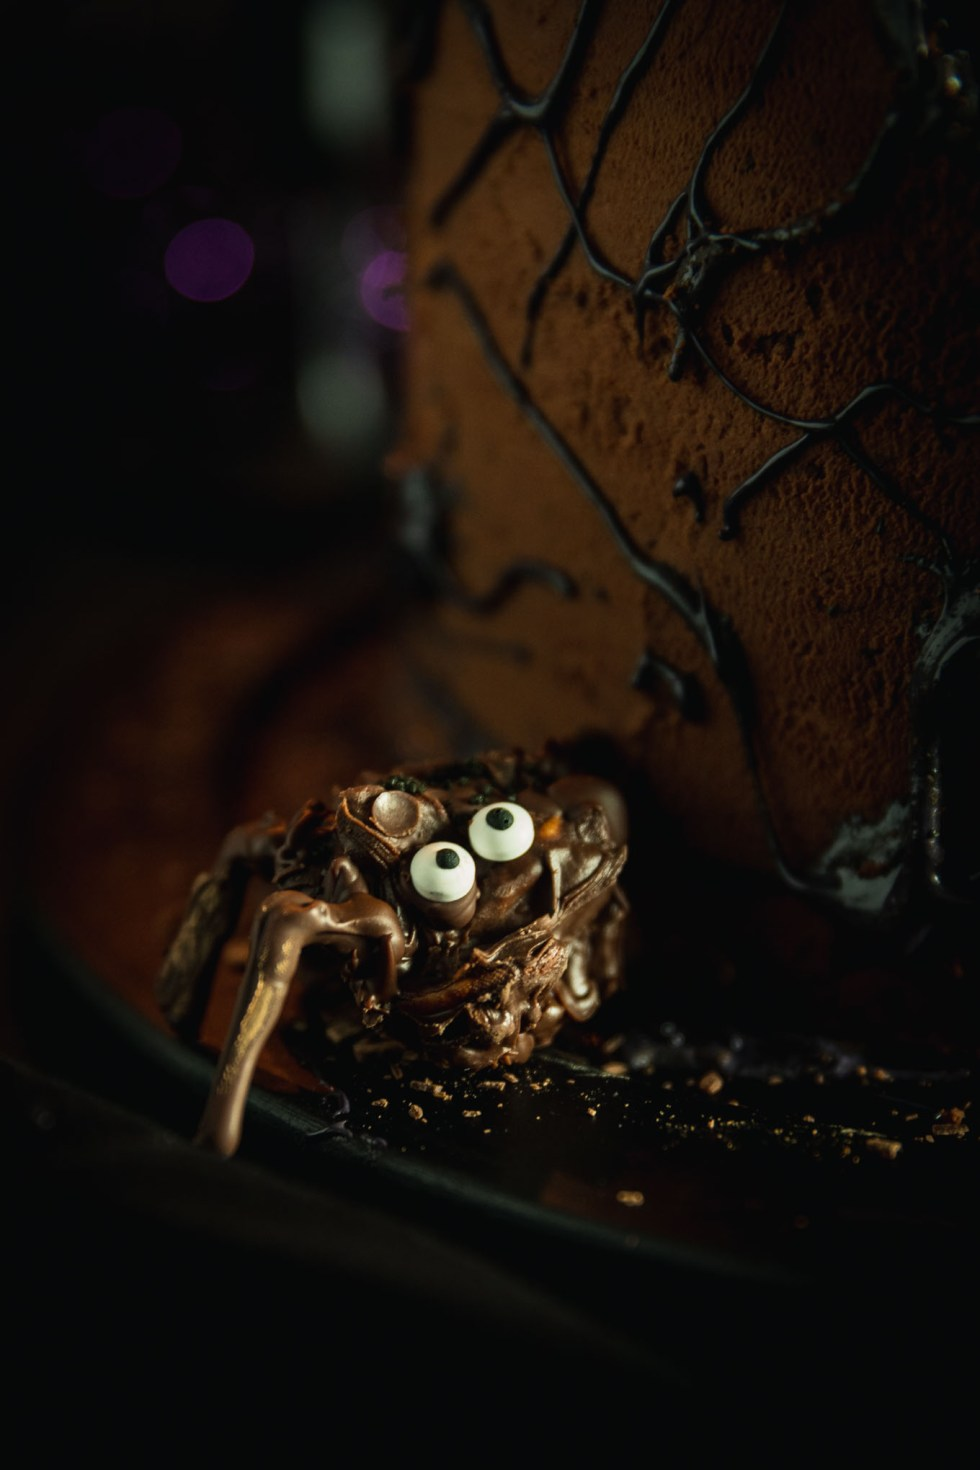 Chocolate spider bite with eyeball sprinkles and piped chocolate legs